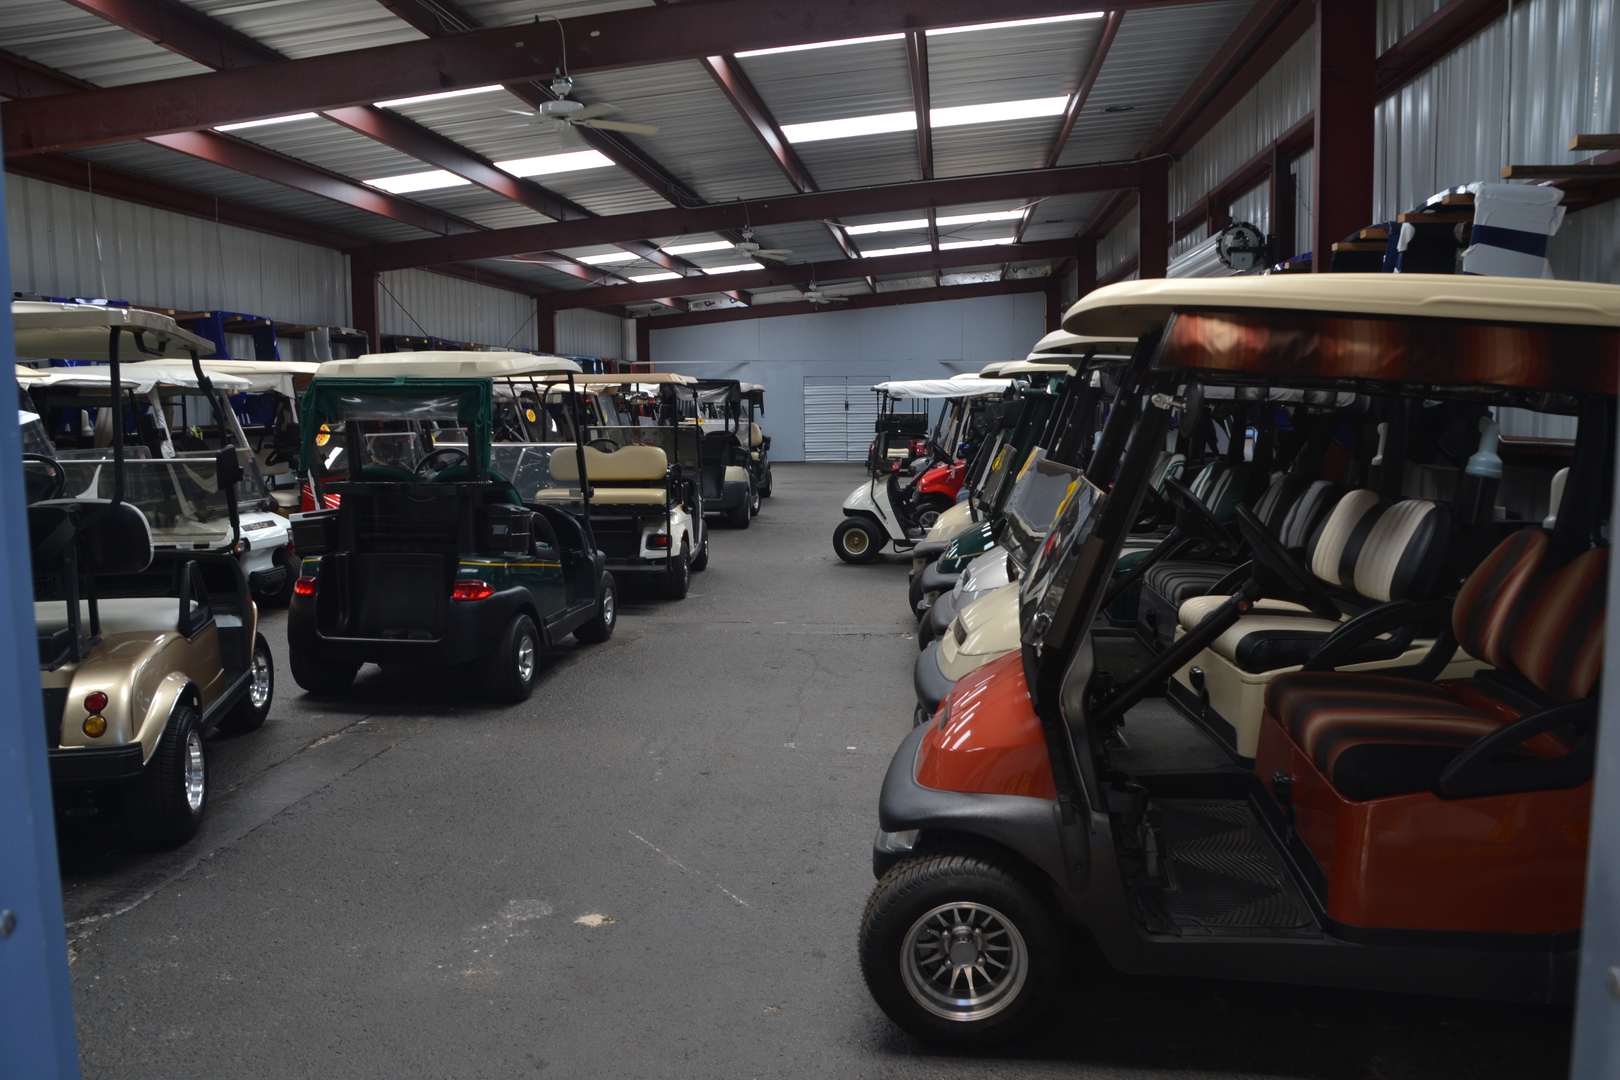 Carts under $4,000 on warehouse golf cart, commercial golf cart, industrial golf cart, construction golf cart, art golf cart, wholesale golf cart, promotions golf cart, residential golf cart, studios golf cart, hospitality golf cart, storage golf cart, service golf cart, factory golf cart,